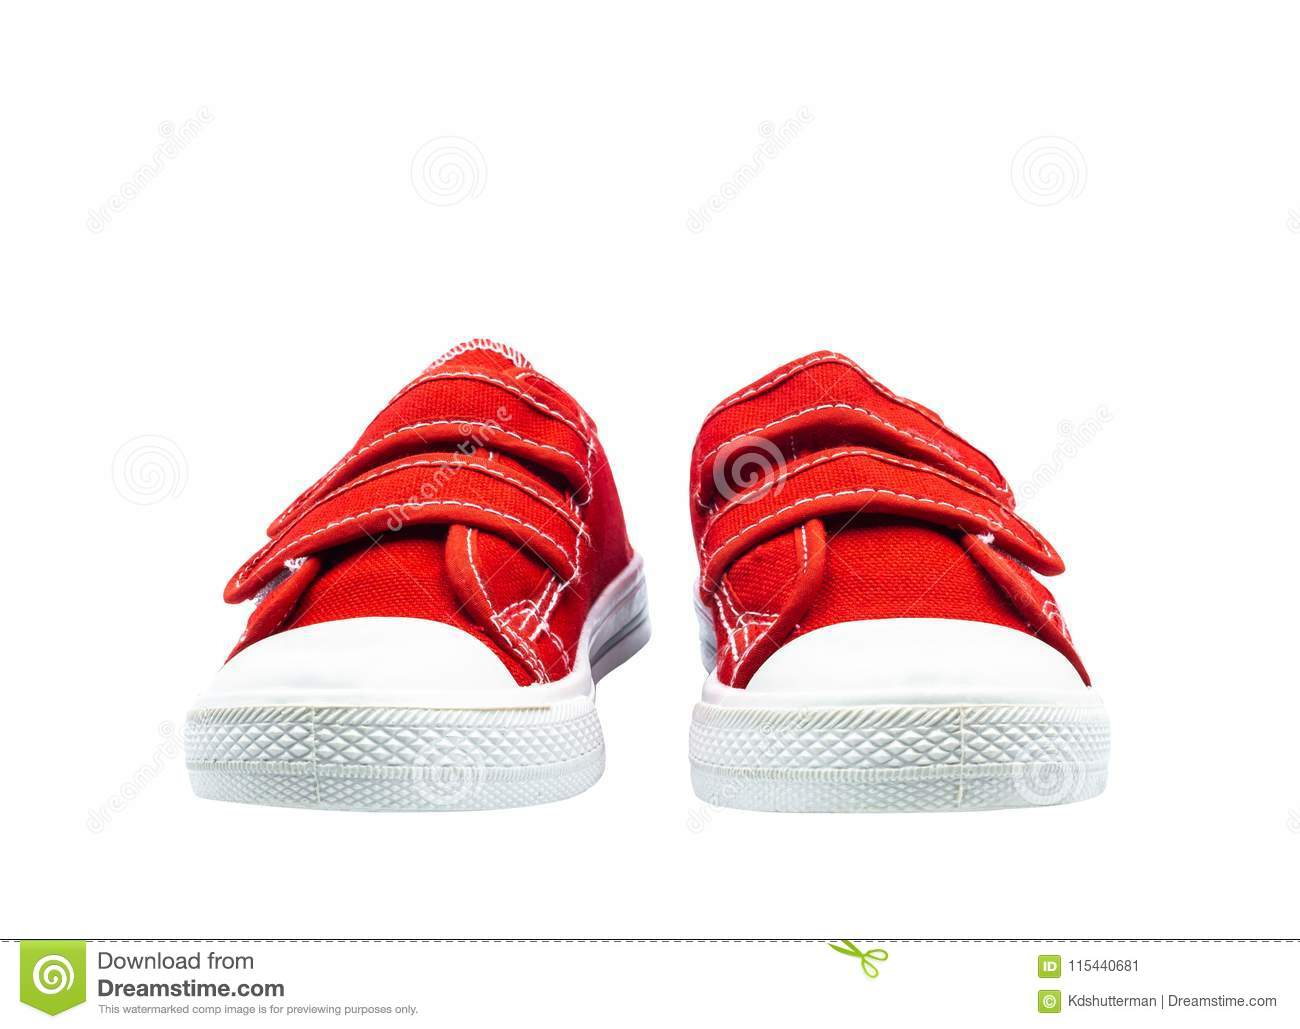 9b9636b9ddc Unbranded modern sport shoes. Pair of new sneaker red thick fabric. Fashion  for kids